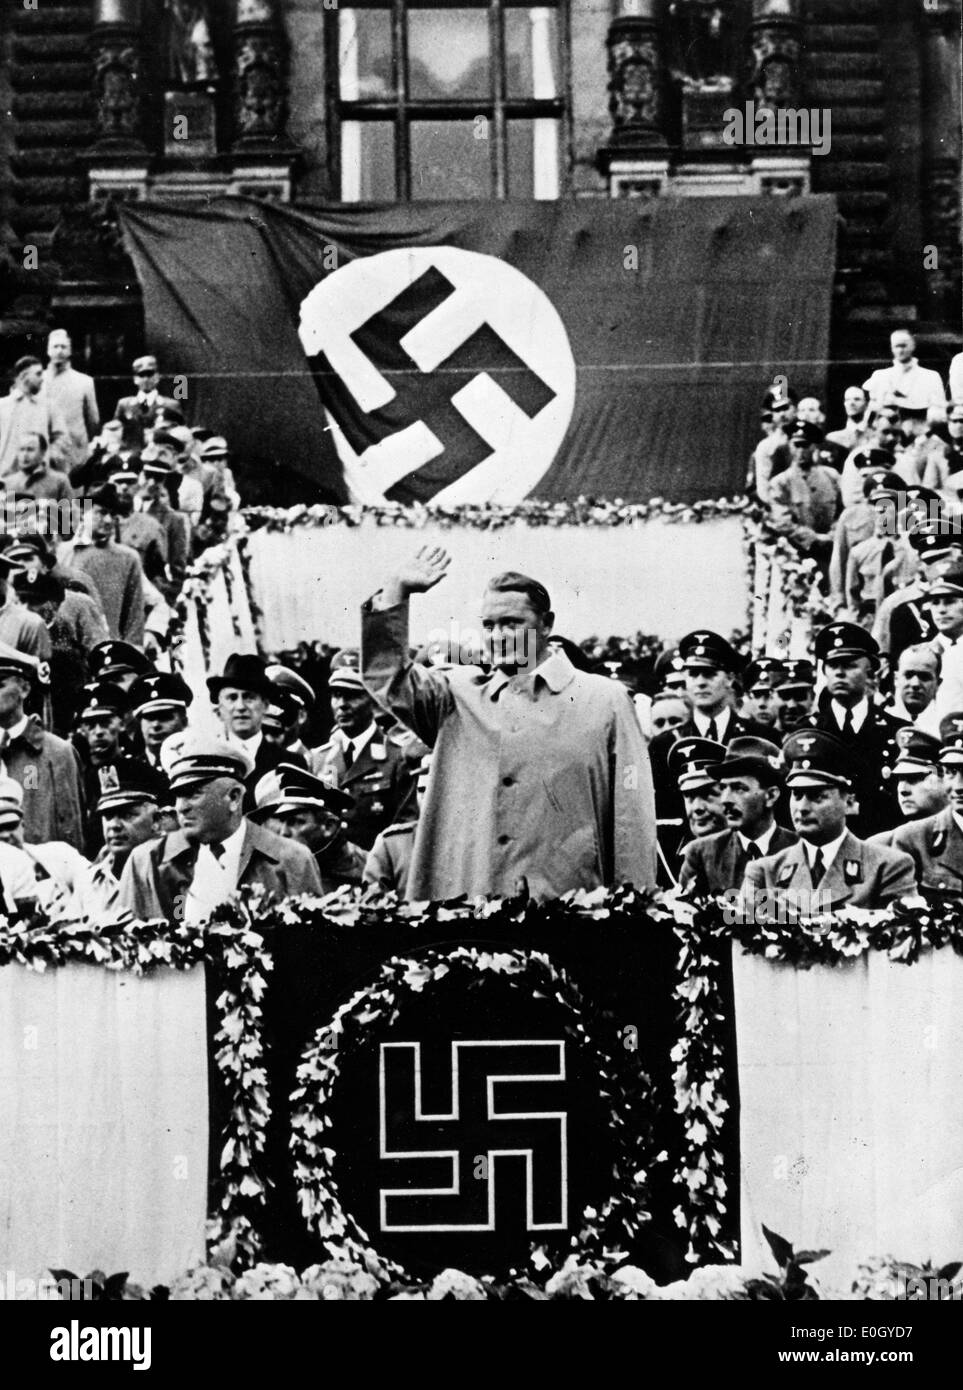 01, 1940 - Germany - File Photo: circa 1940s, exact location unknown. Nazi  leader HERMANN GOERING.